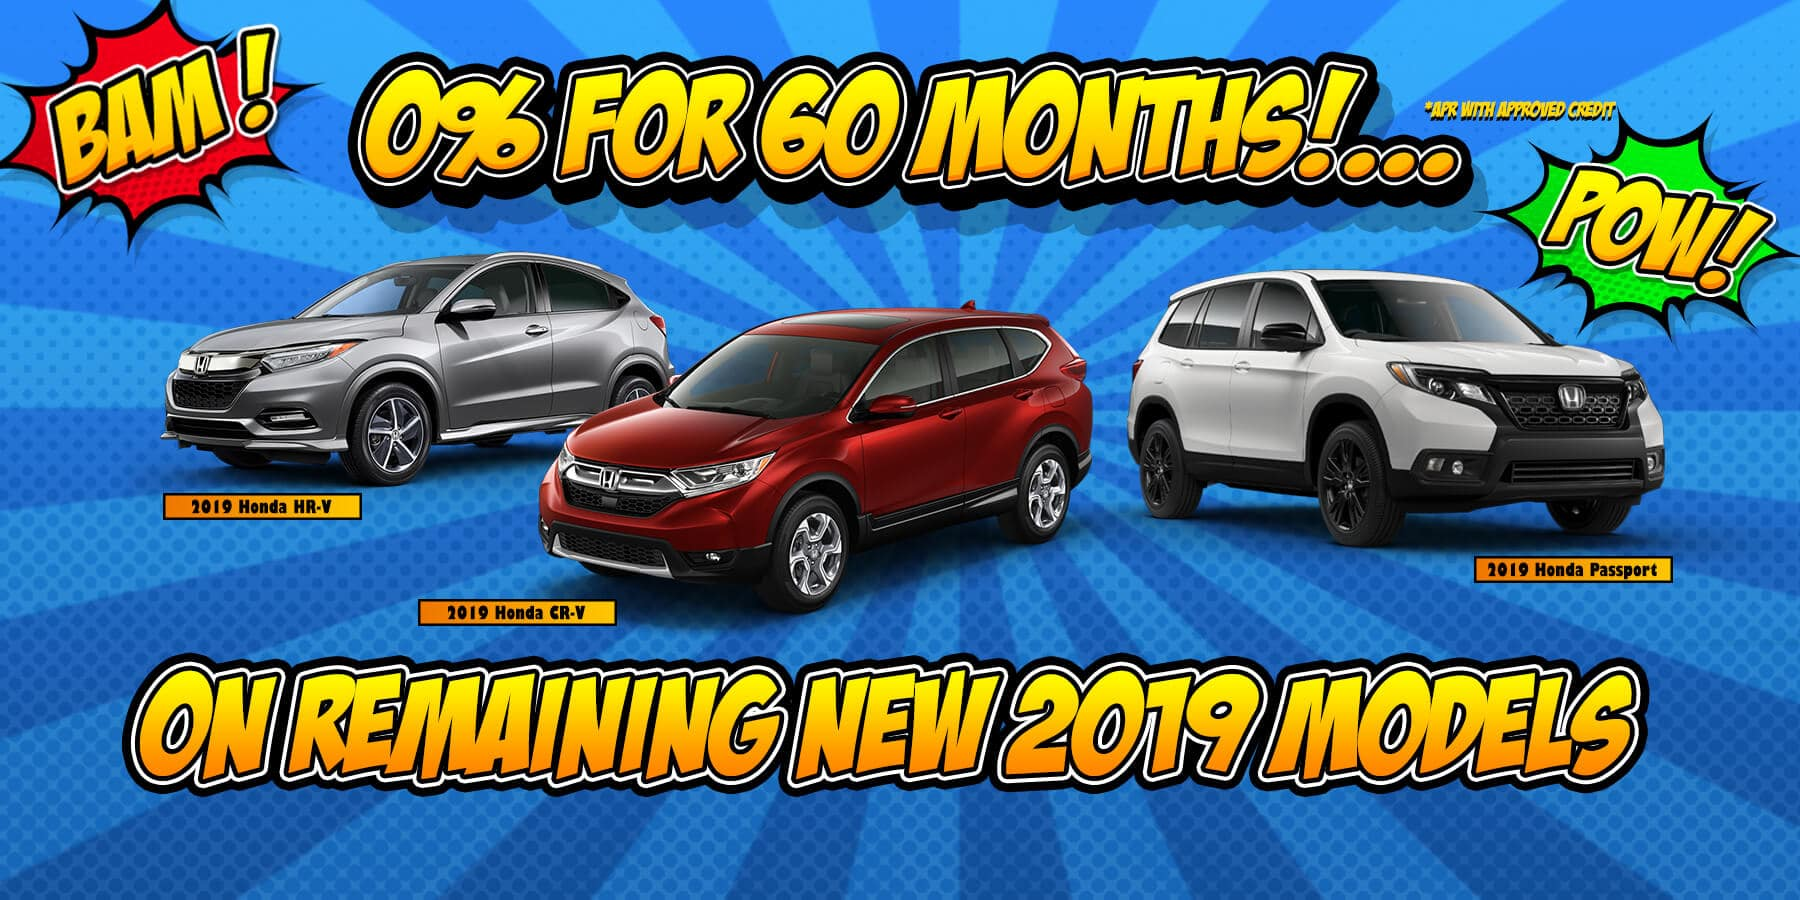 0% APR on remaining 2019 Models